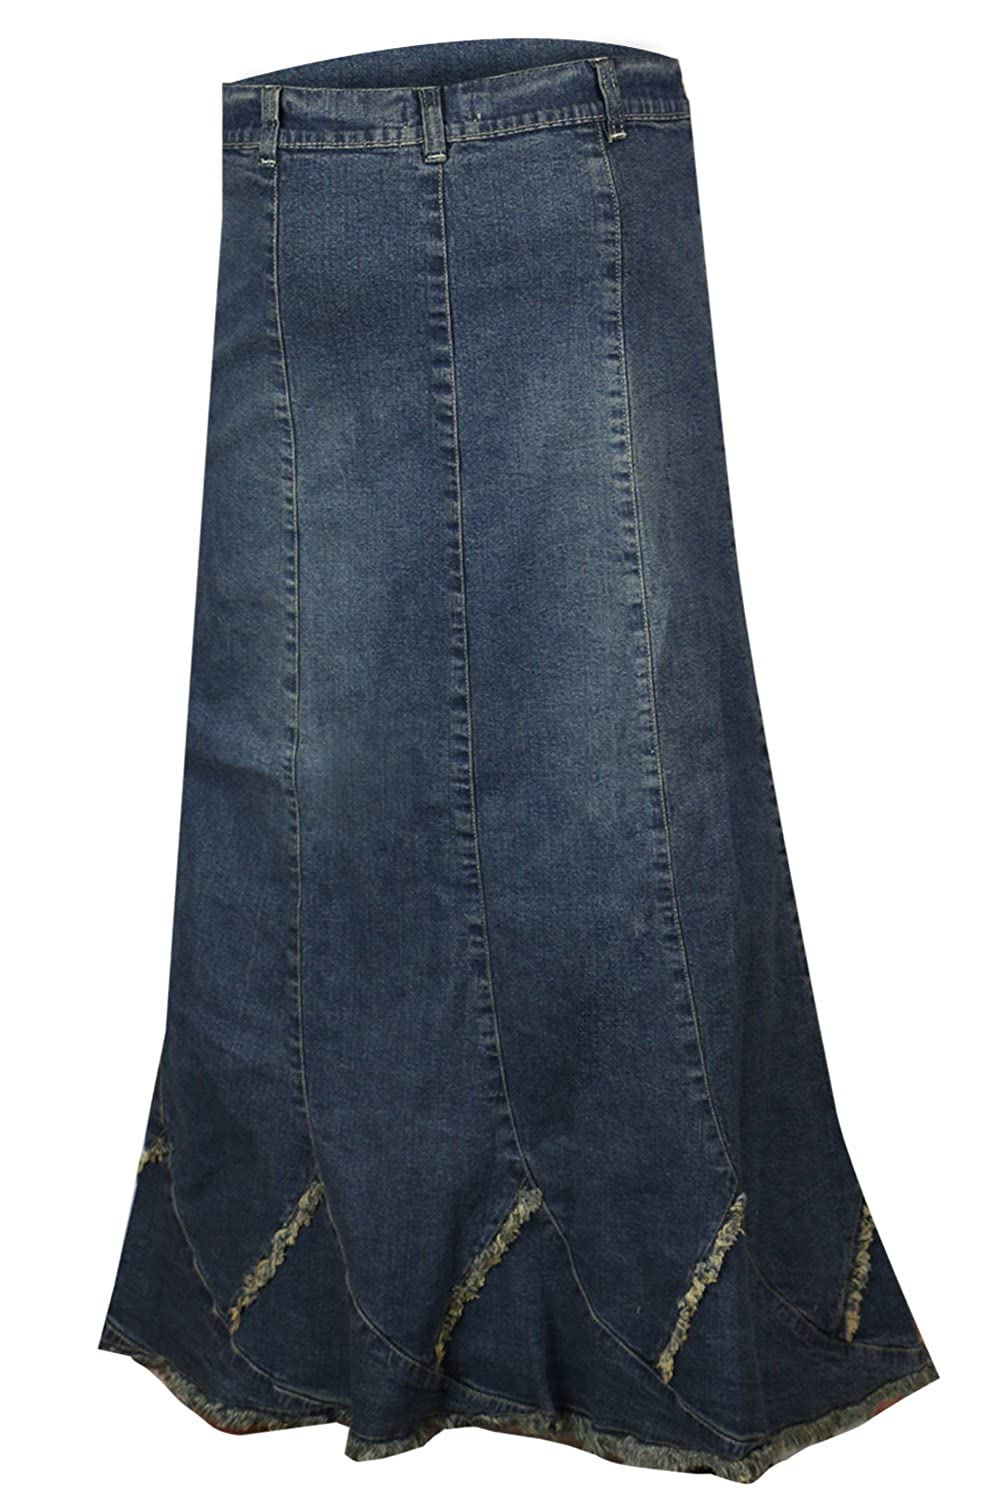 Clove Ankel Lenght Long Frayed Hem Blue Stretch Denim A Line Skirt Plus Size 14 16 18 20 22 24